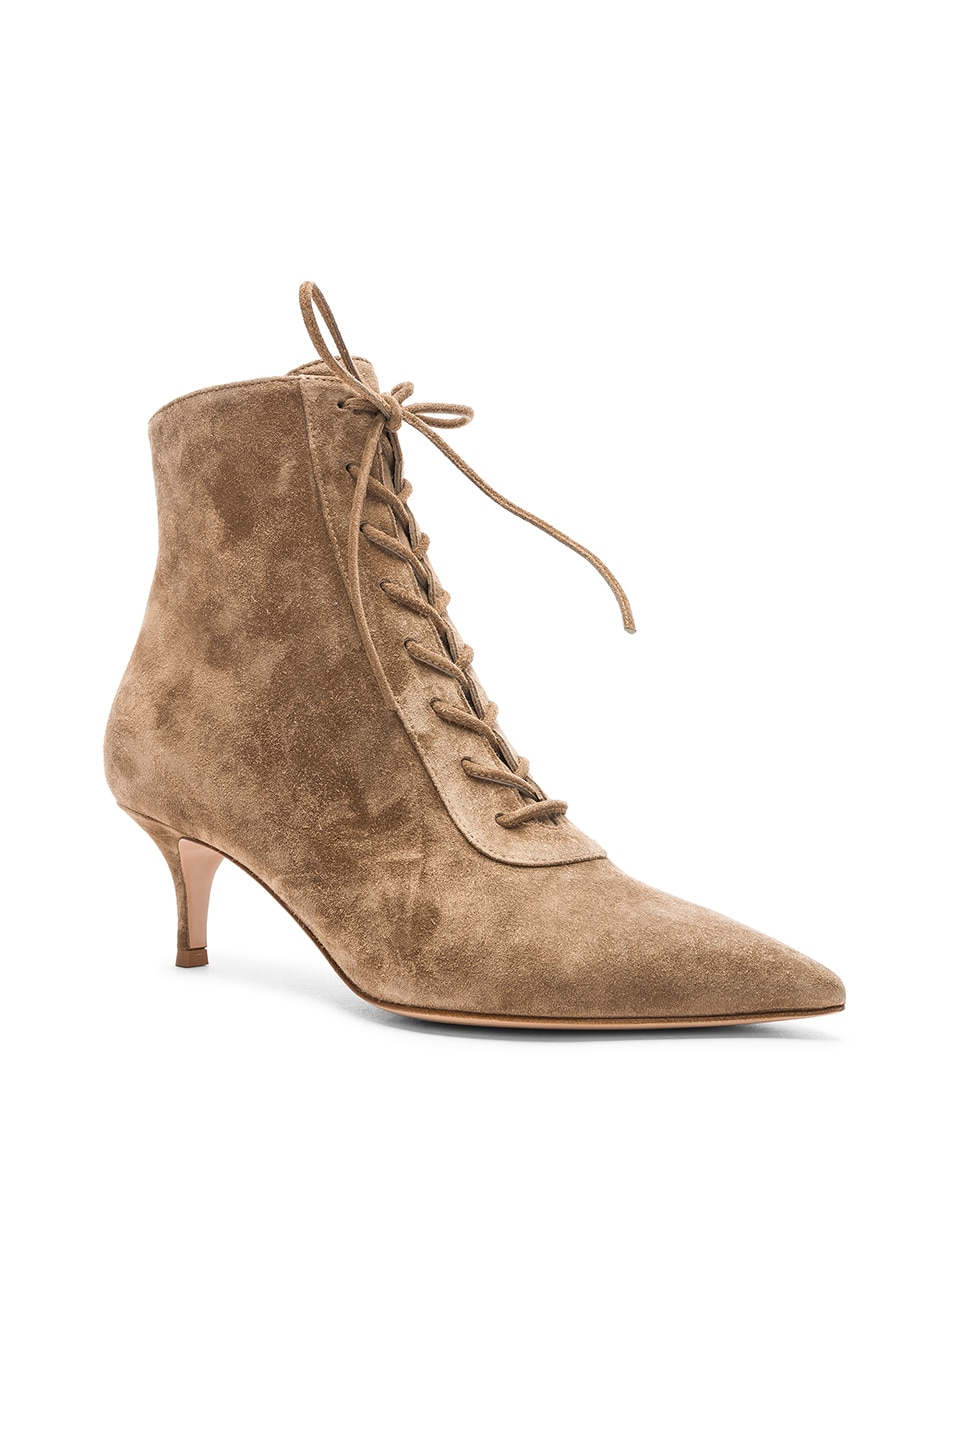 Image 2 of Gianvito Rossi Suede Kitten Heel Lace Up Ankle Boots in Camel